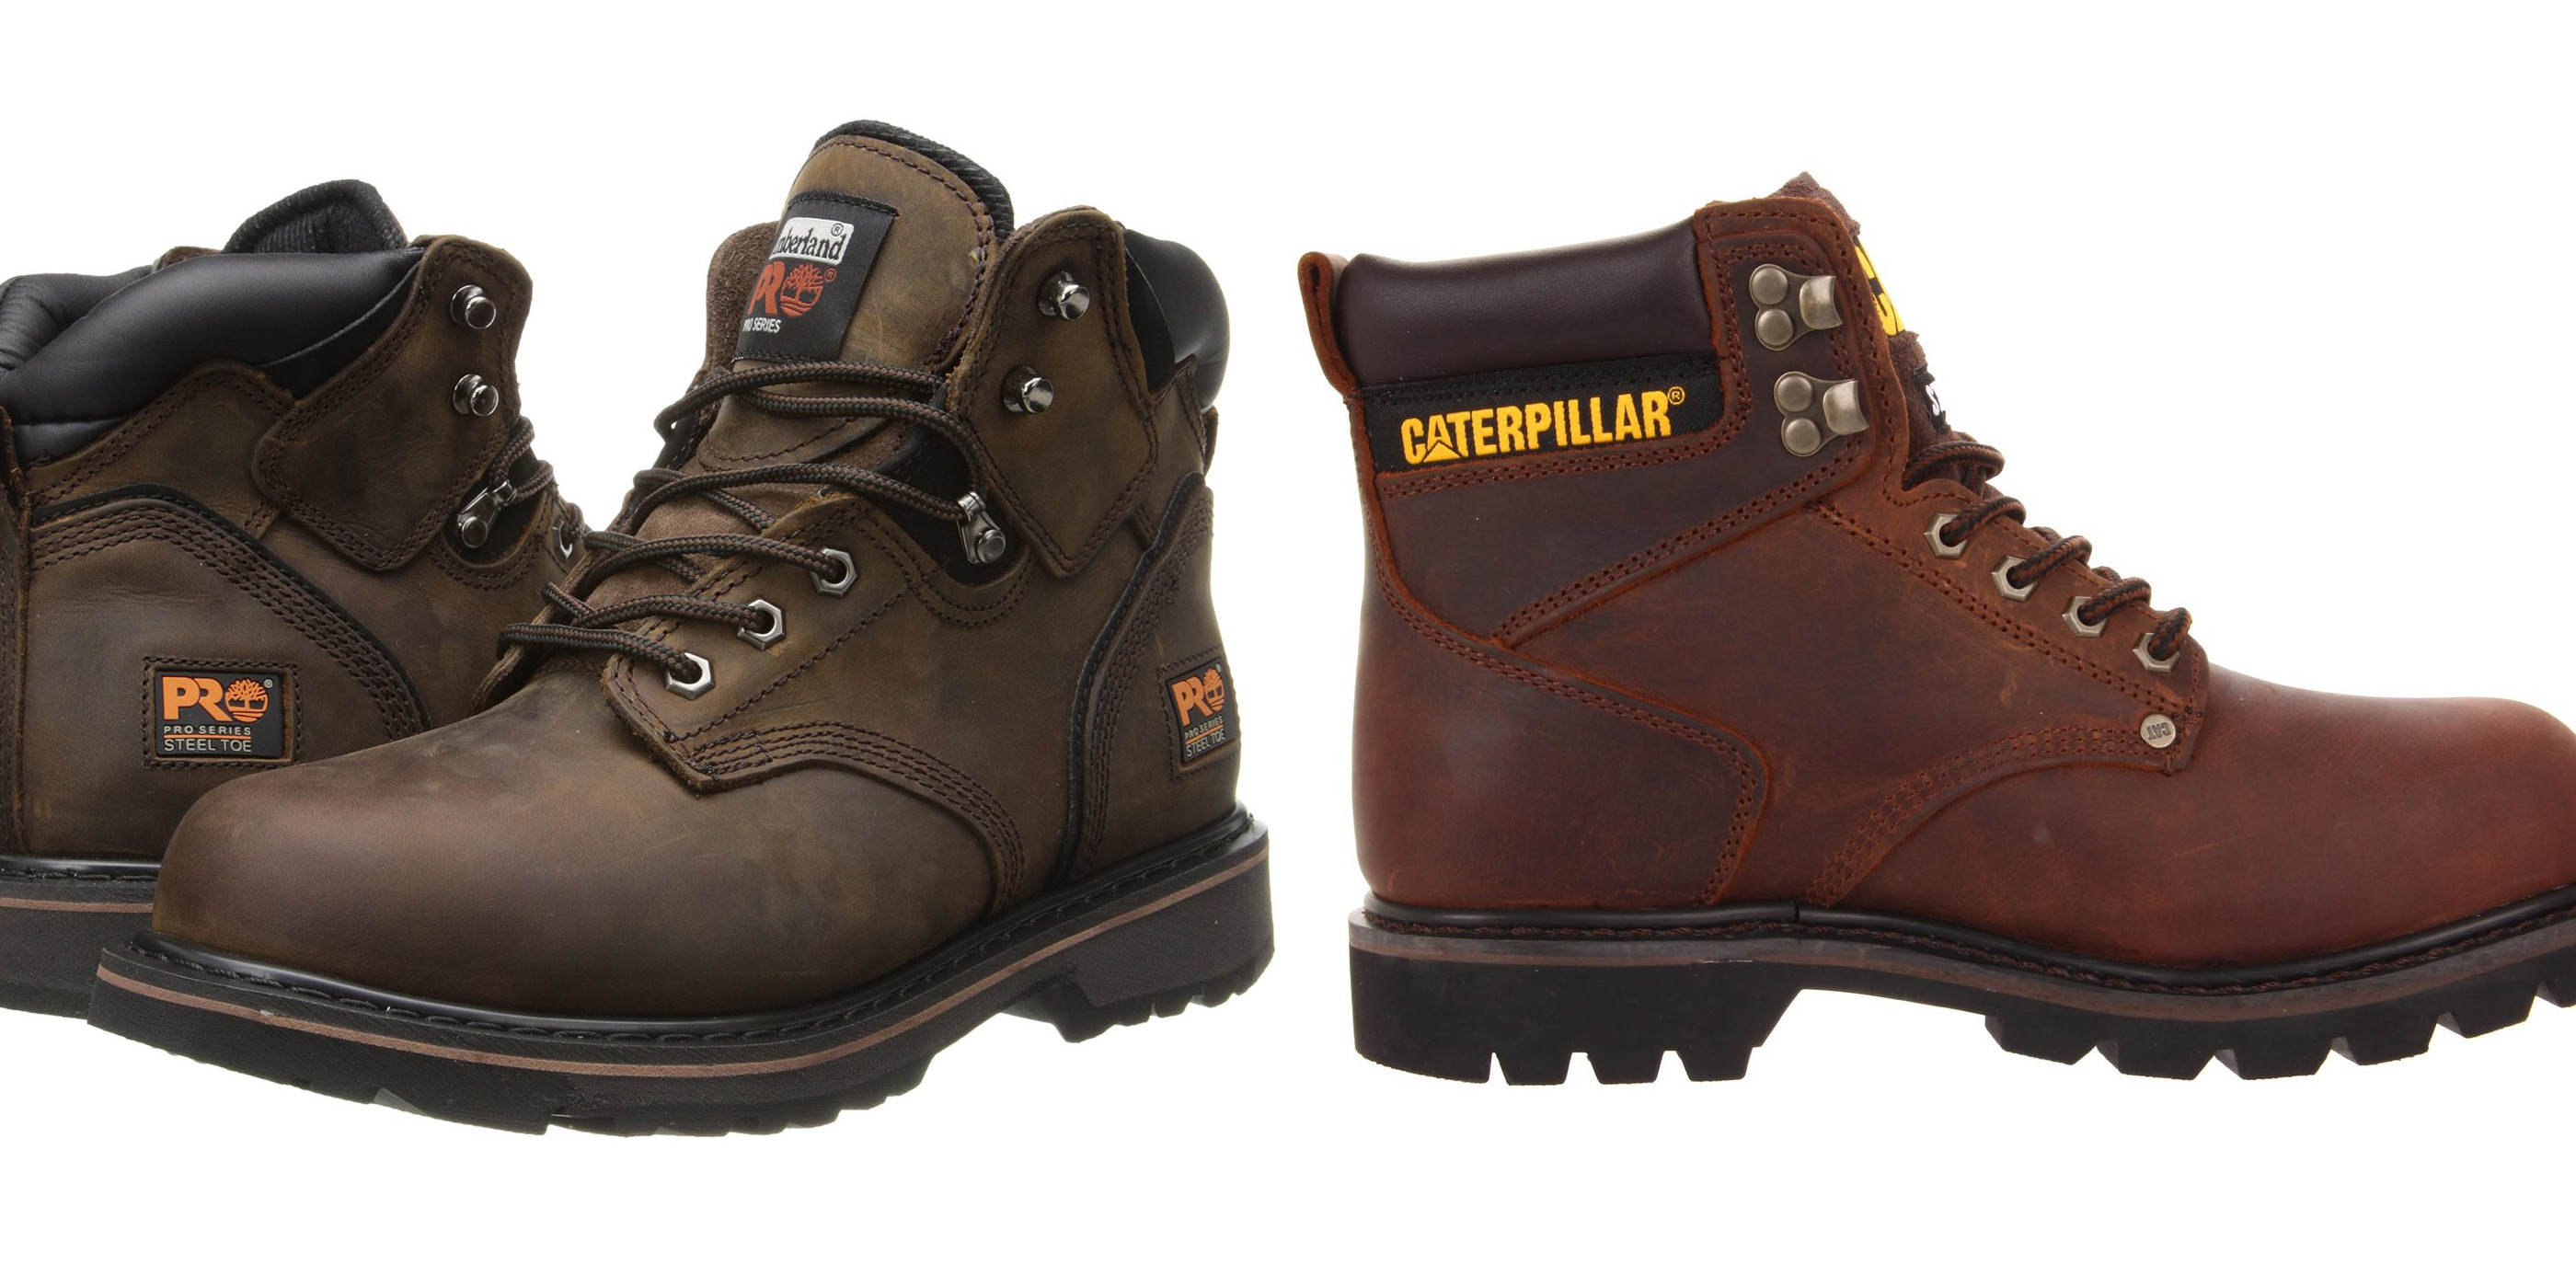 b0246dec Amazon offers up to 40% off work/safety boots & shoes from $24:  Caterpillar, Timberland, Skechers, Levi's, more